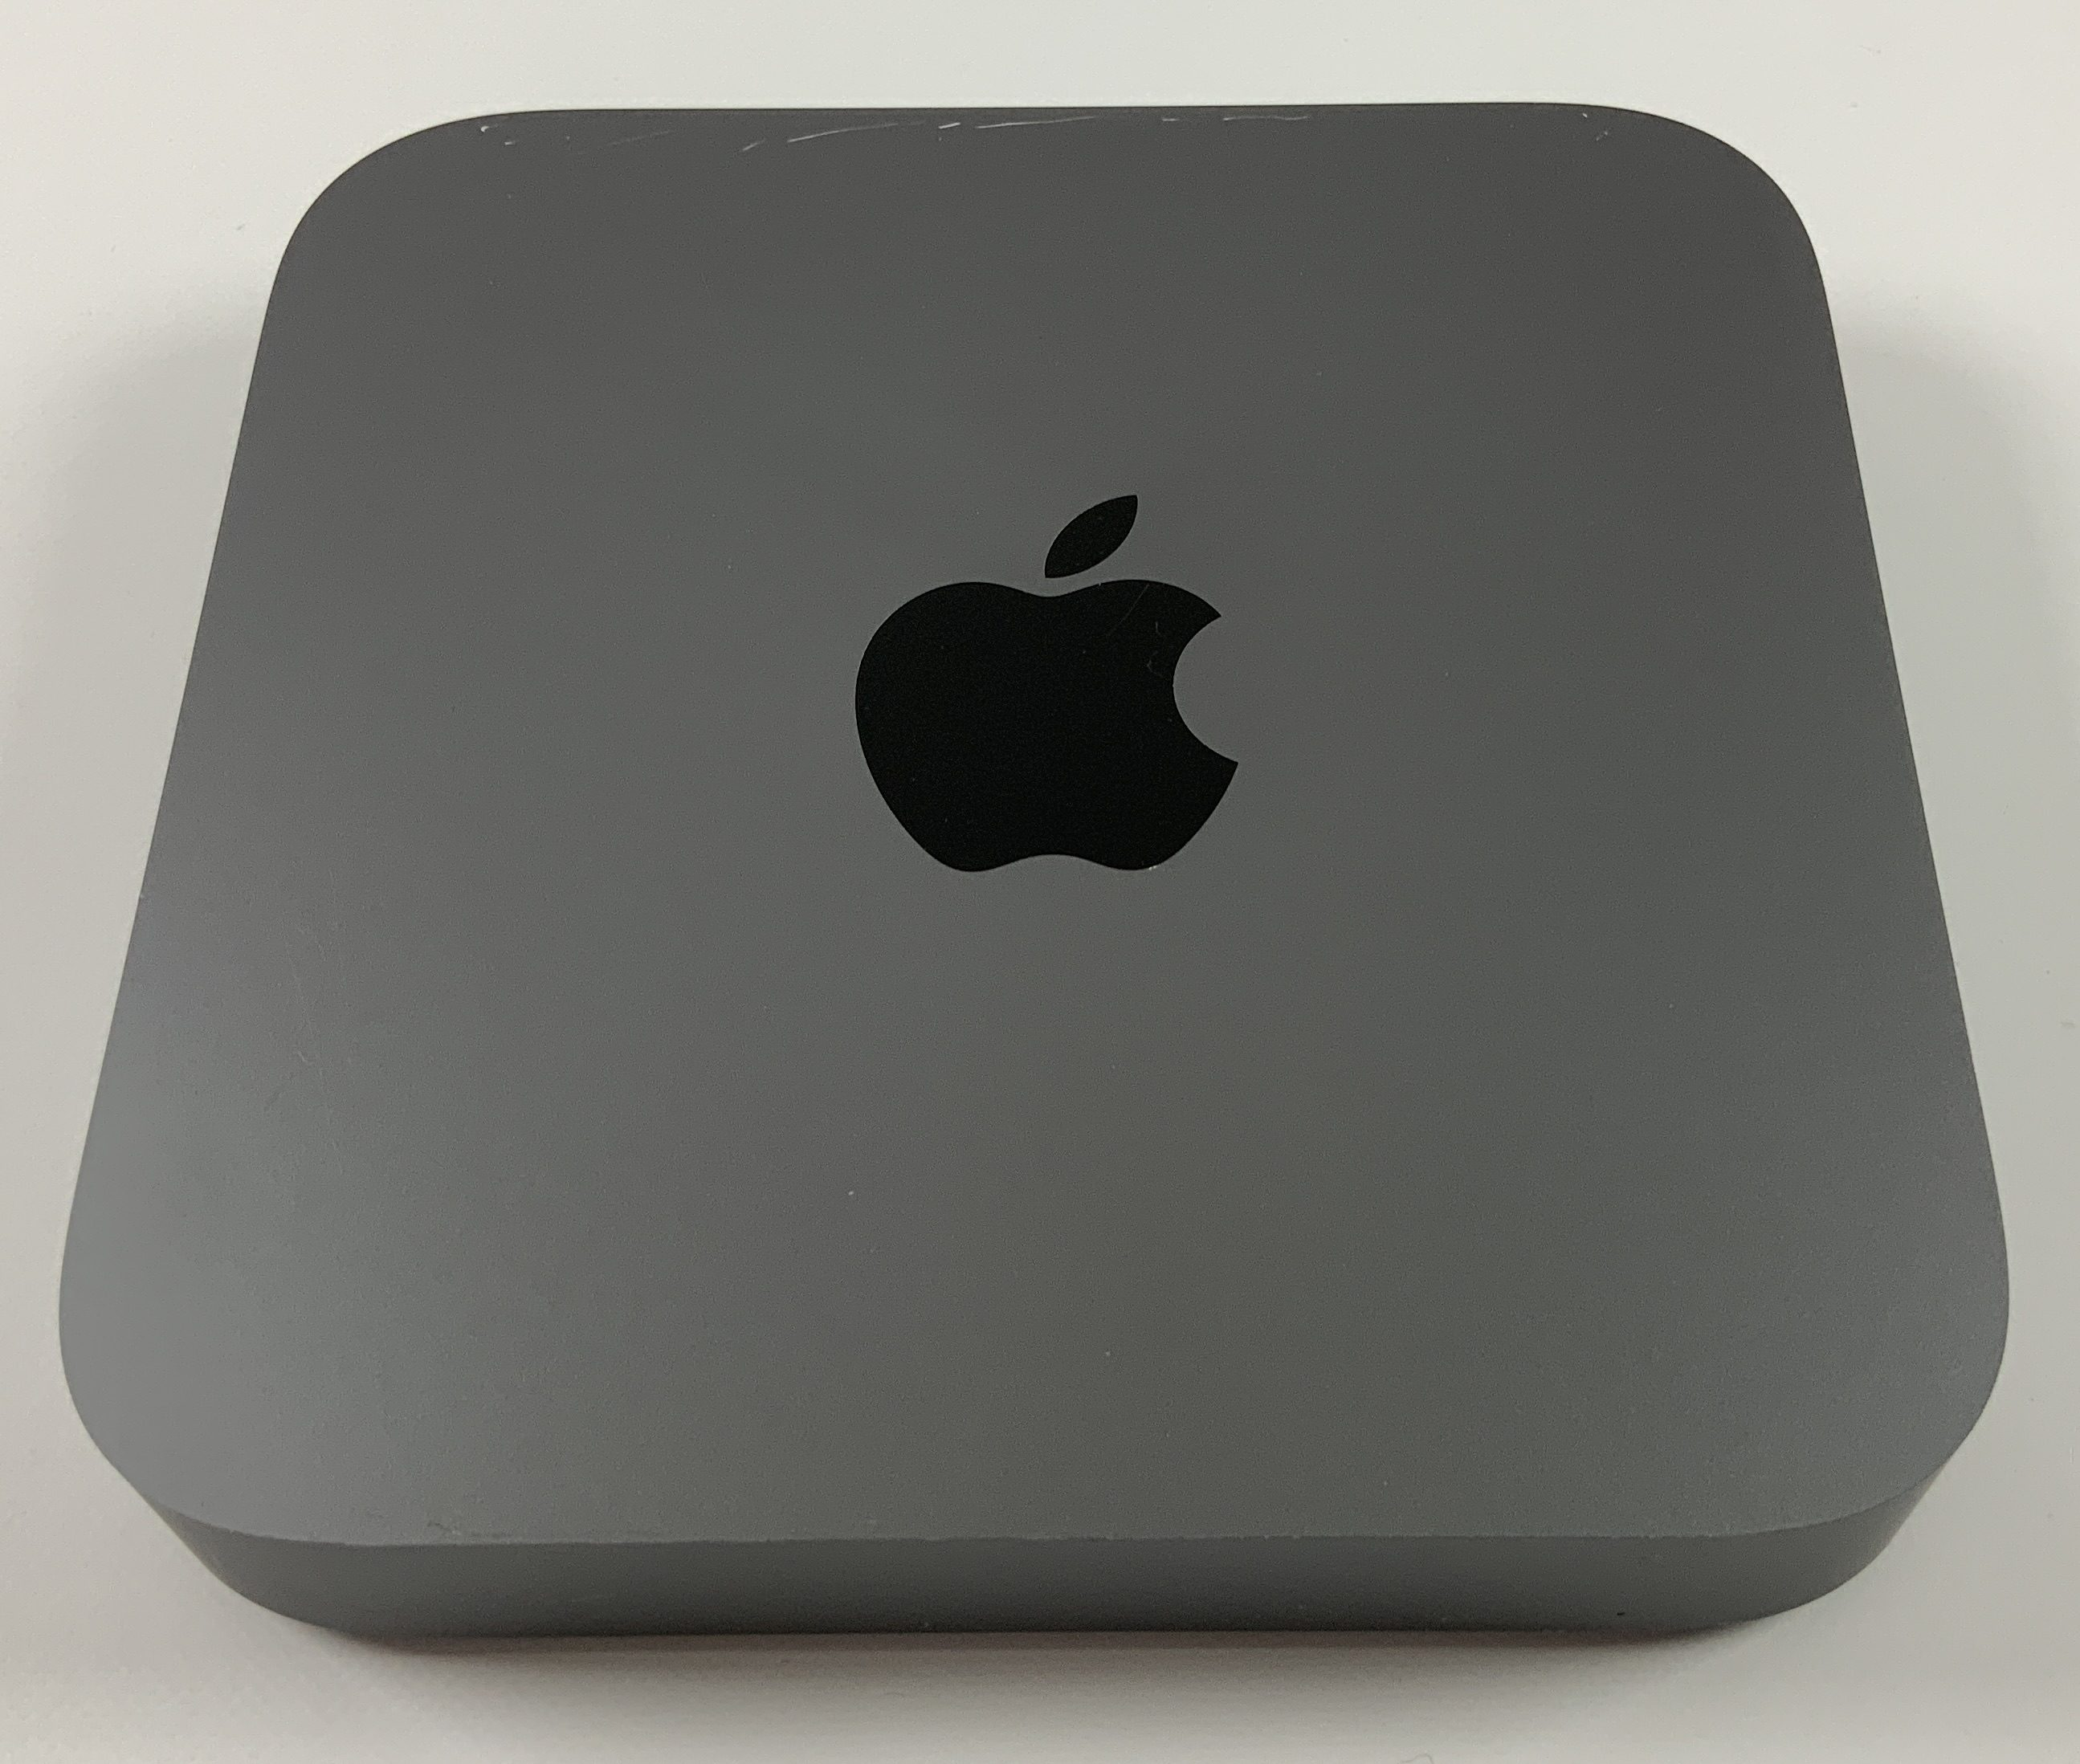 Mac Mini Late 2018 (Intel Quad-Core i3 3.6 GHz 8 GB RAM 128 GB SSD), Intel Quad-Core i3 3.6 GHz, 8 GB RAM, 128 GB SSD, Bild 1